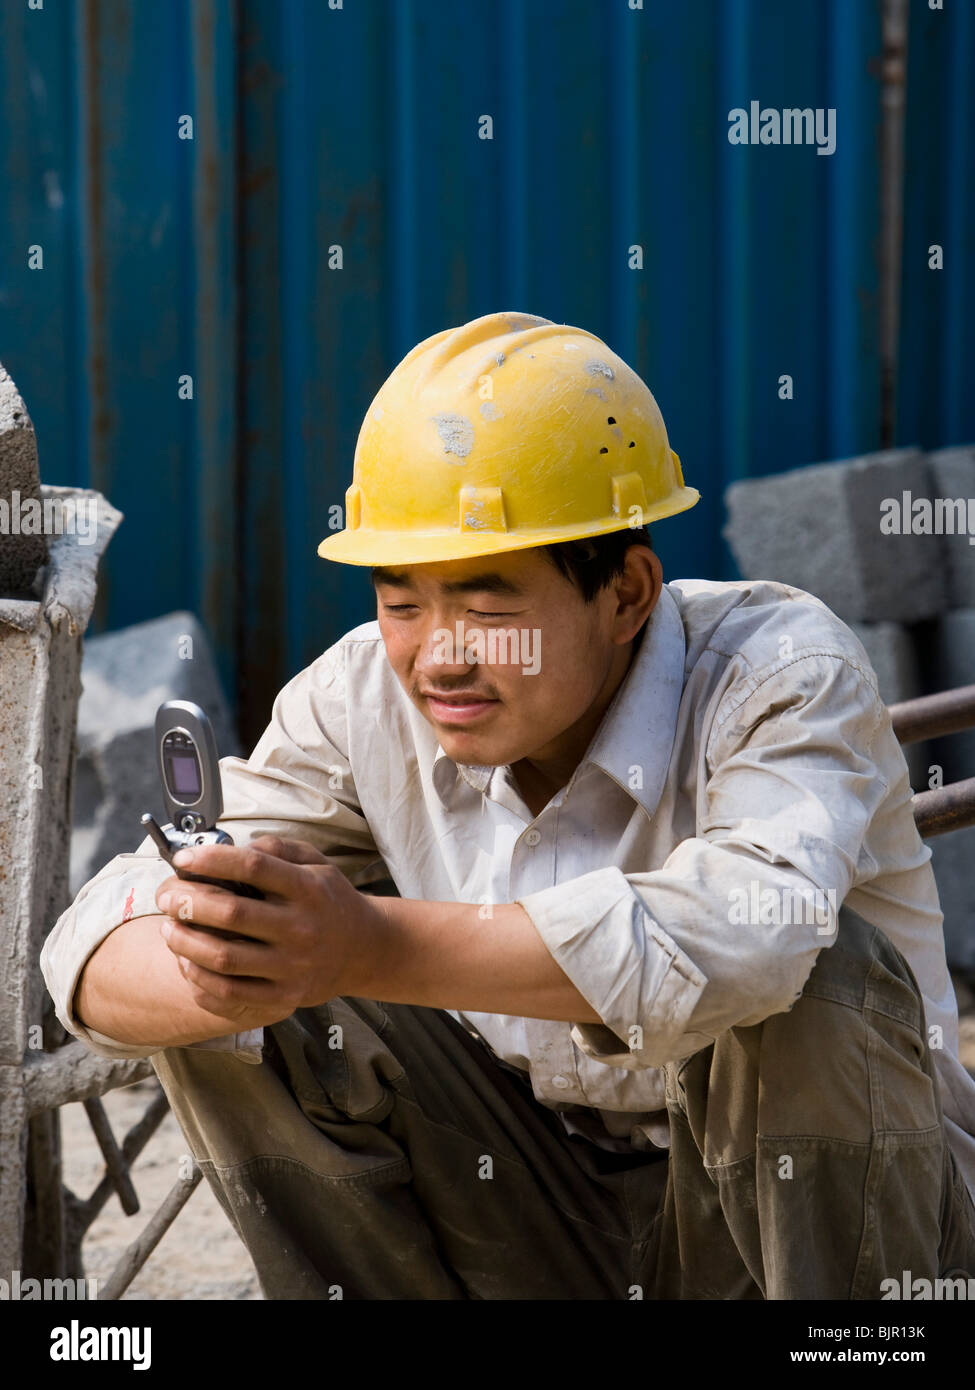 Construction worker looking at his cell phone. - Stock Image